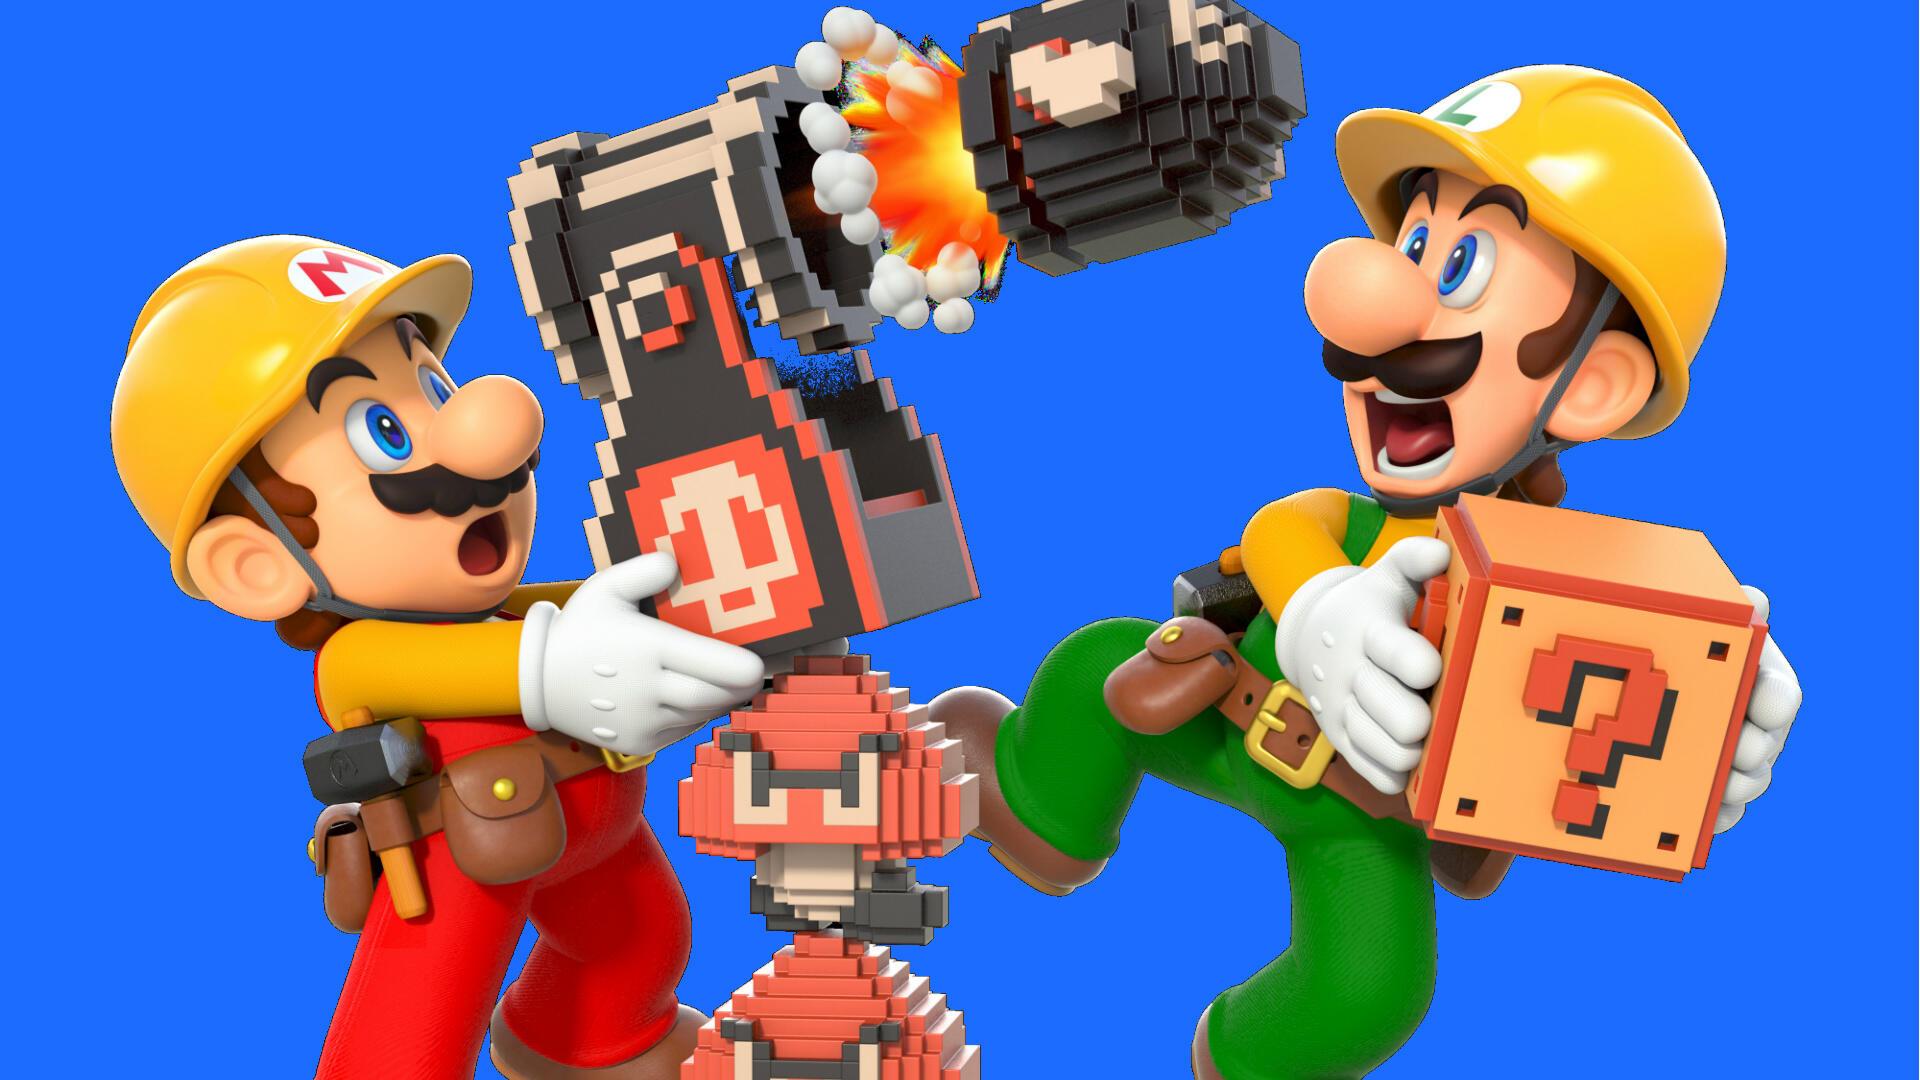 Latest Super Mario Maker 2 Patch Finally Lets You Play Online With Friends